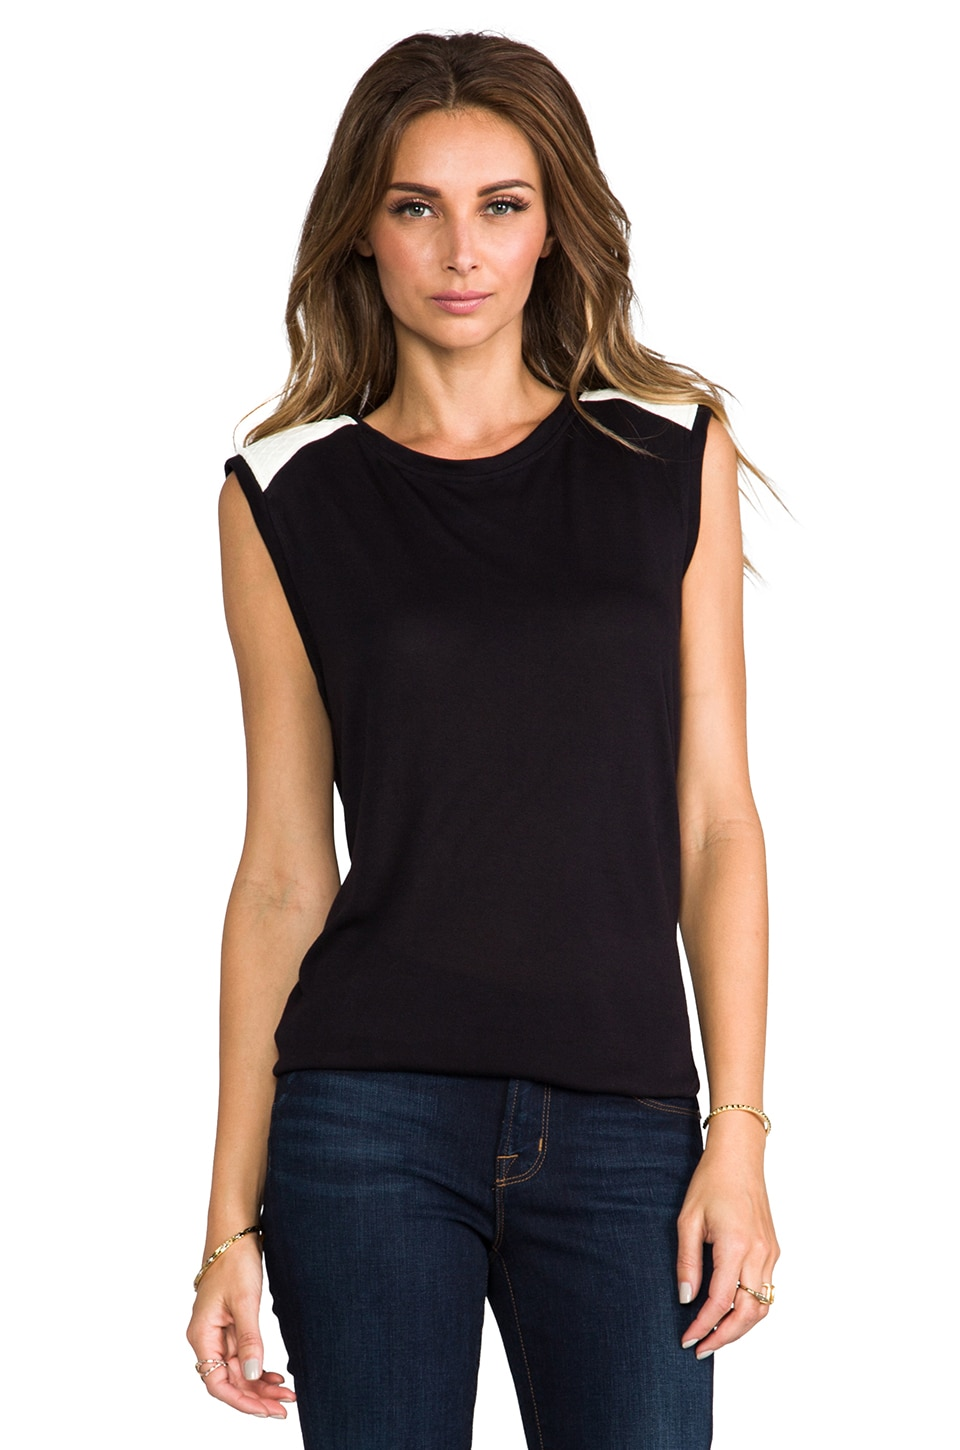 TOWNSEN Carmen Tank in Black/White